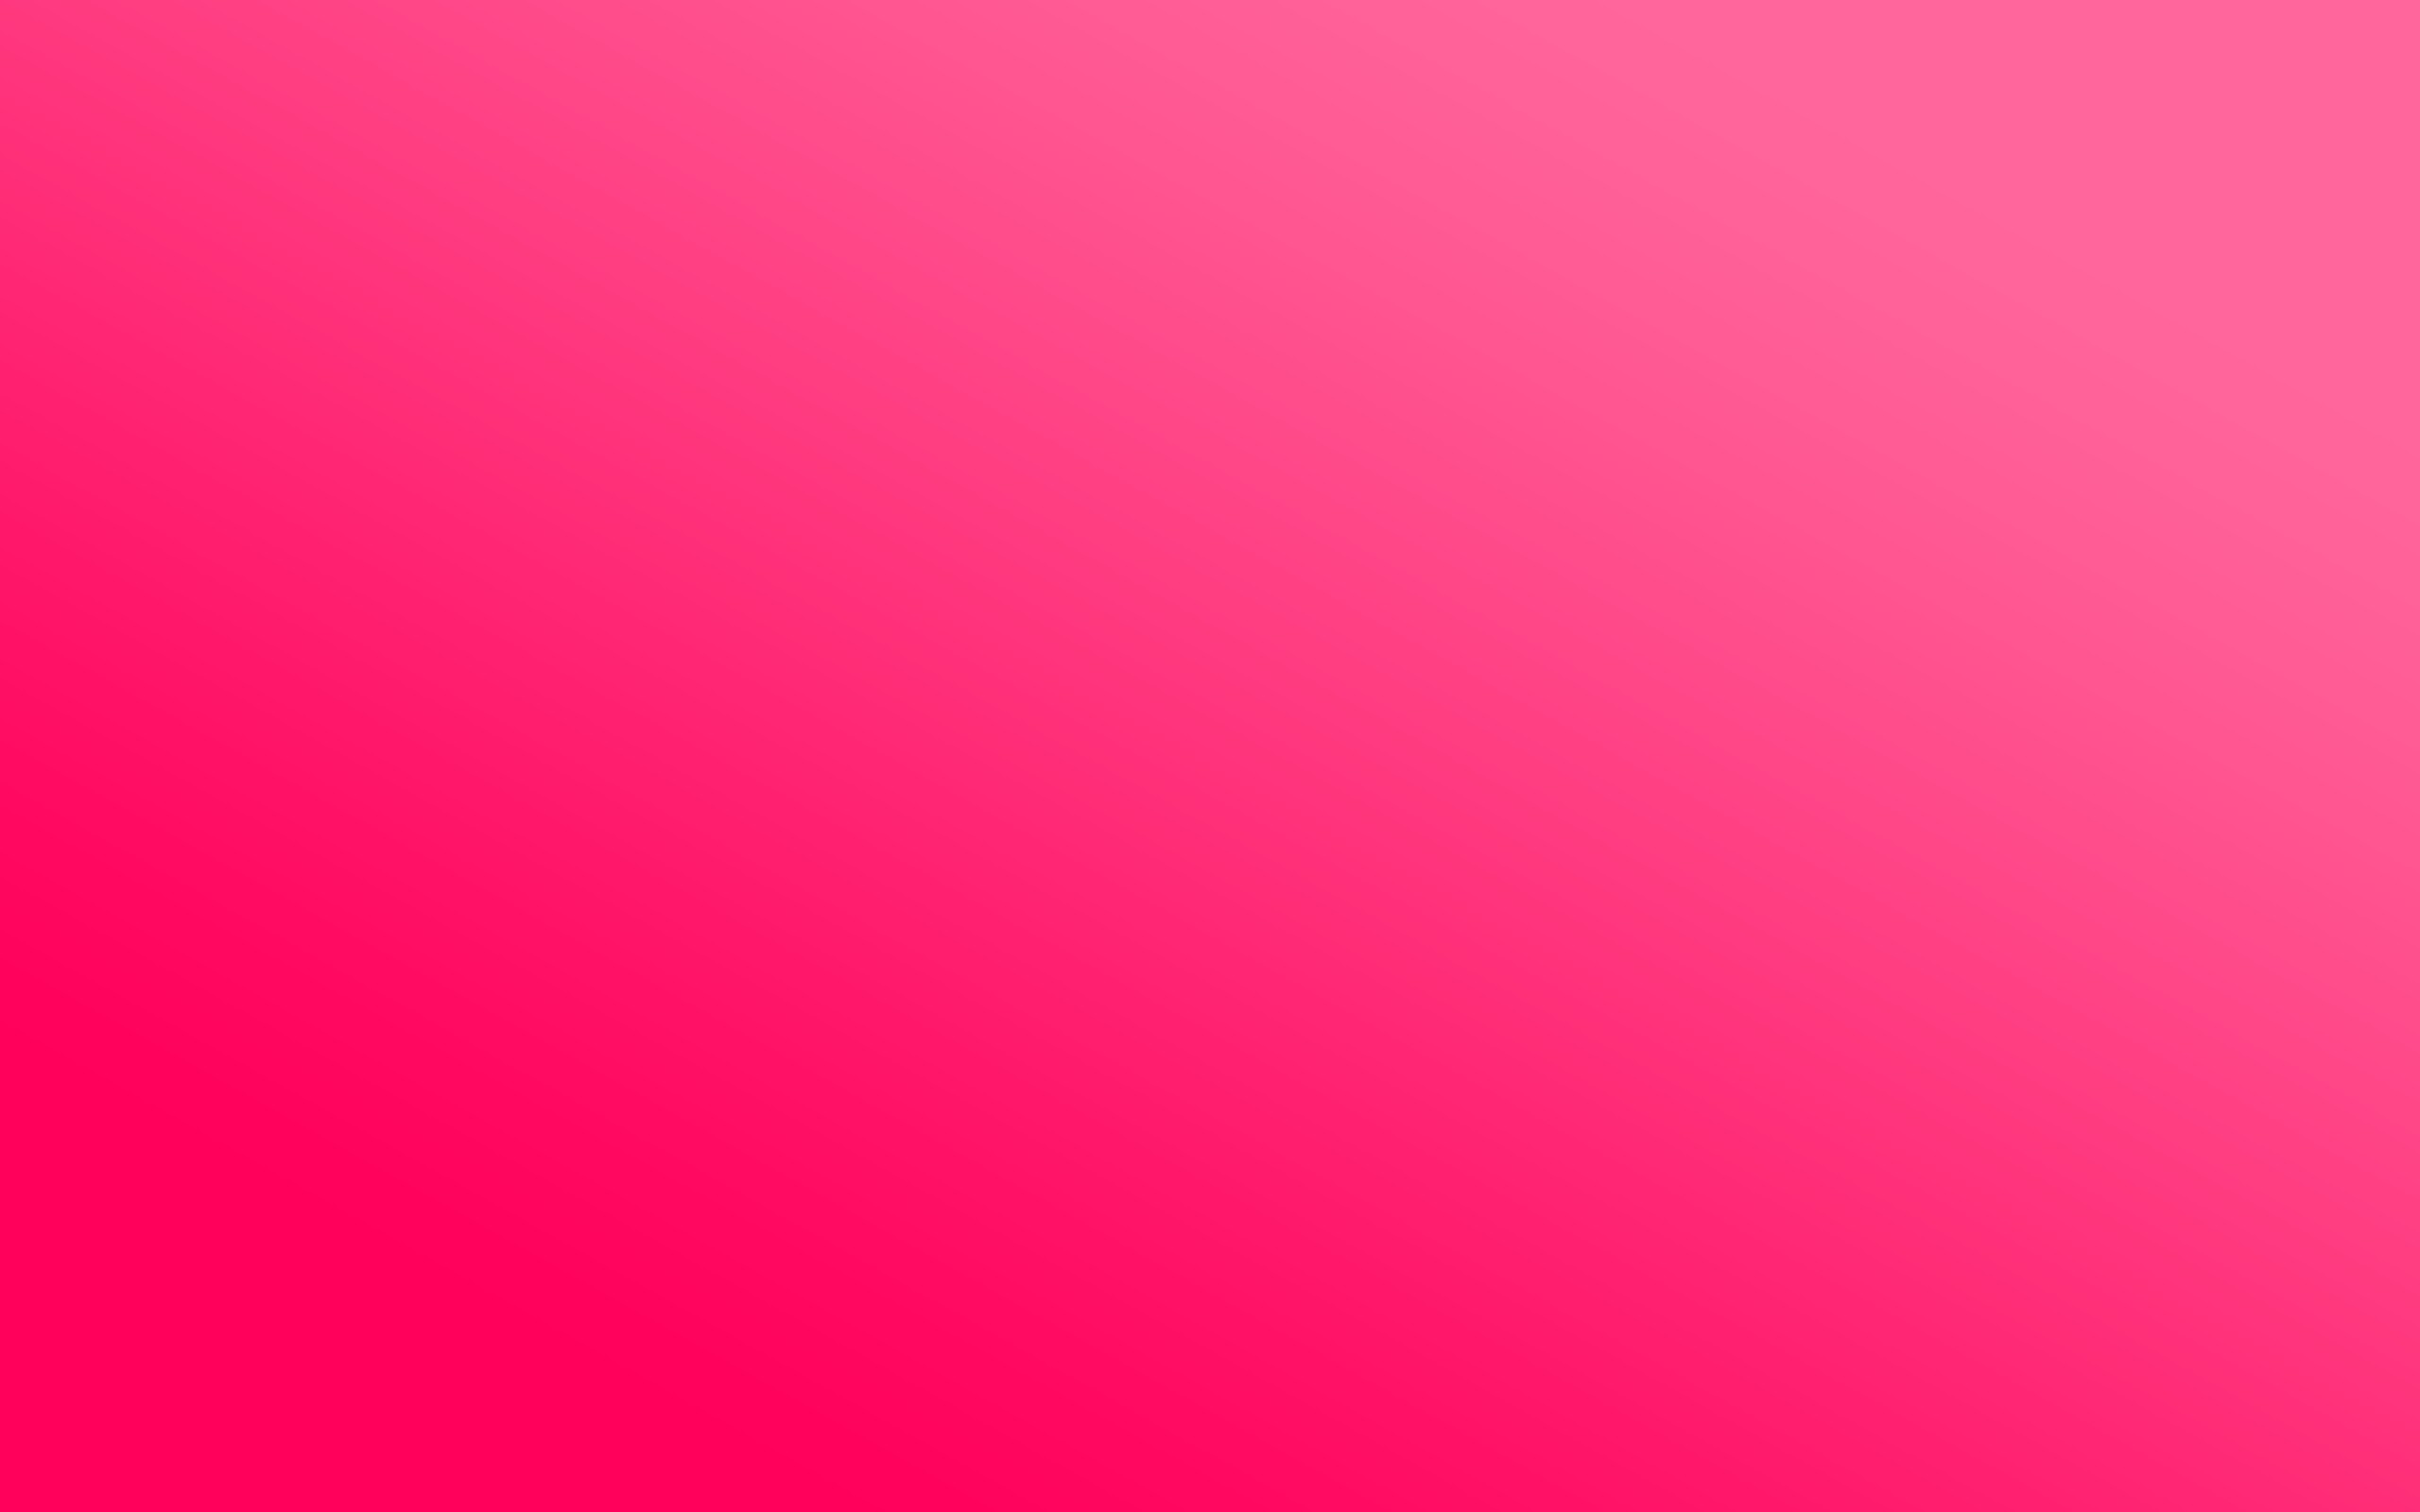 color pink wallpaper 60 images